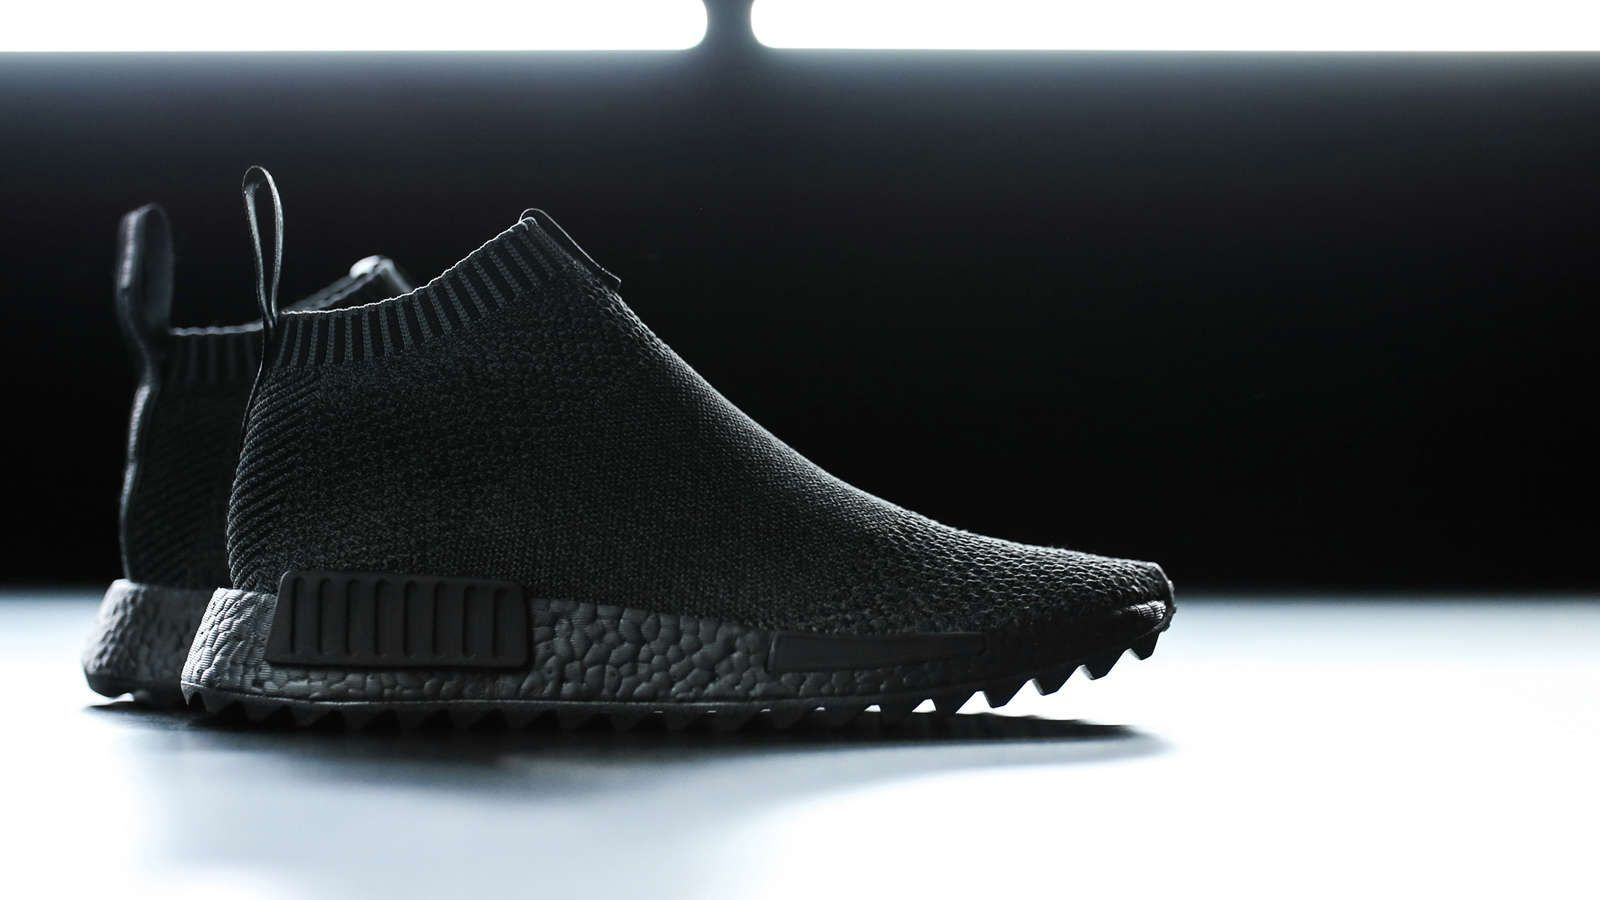 promo code 94f98 6c6b0 adidas Consortium x The Good Will Out - NMD CS1 PK Shinobi ...